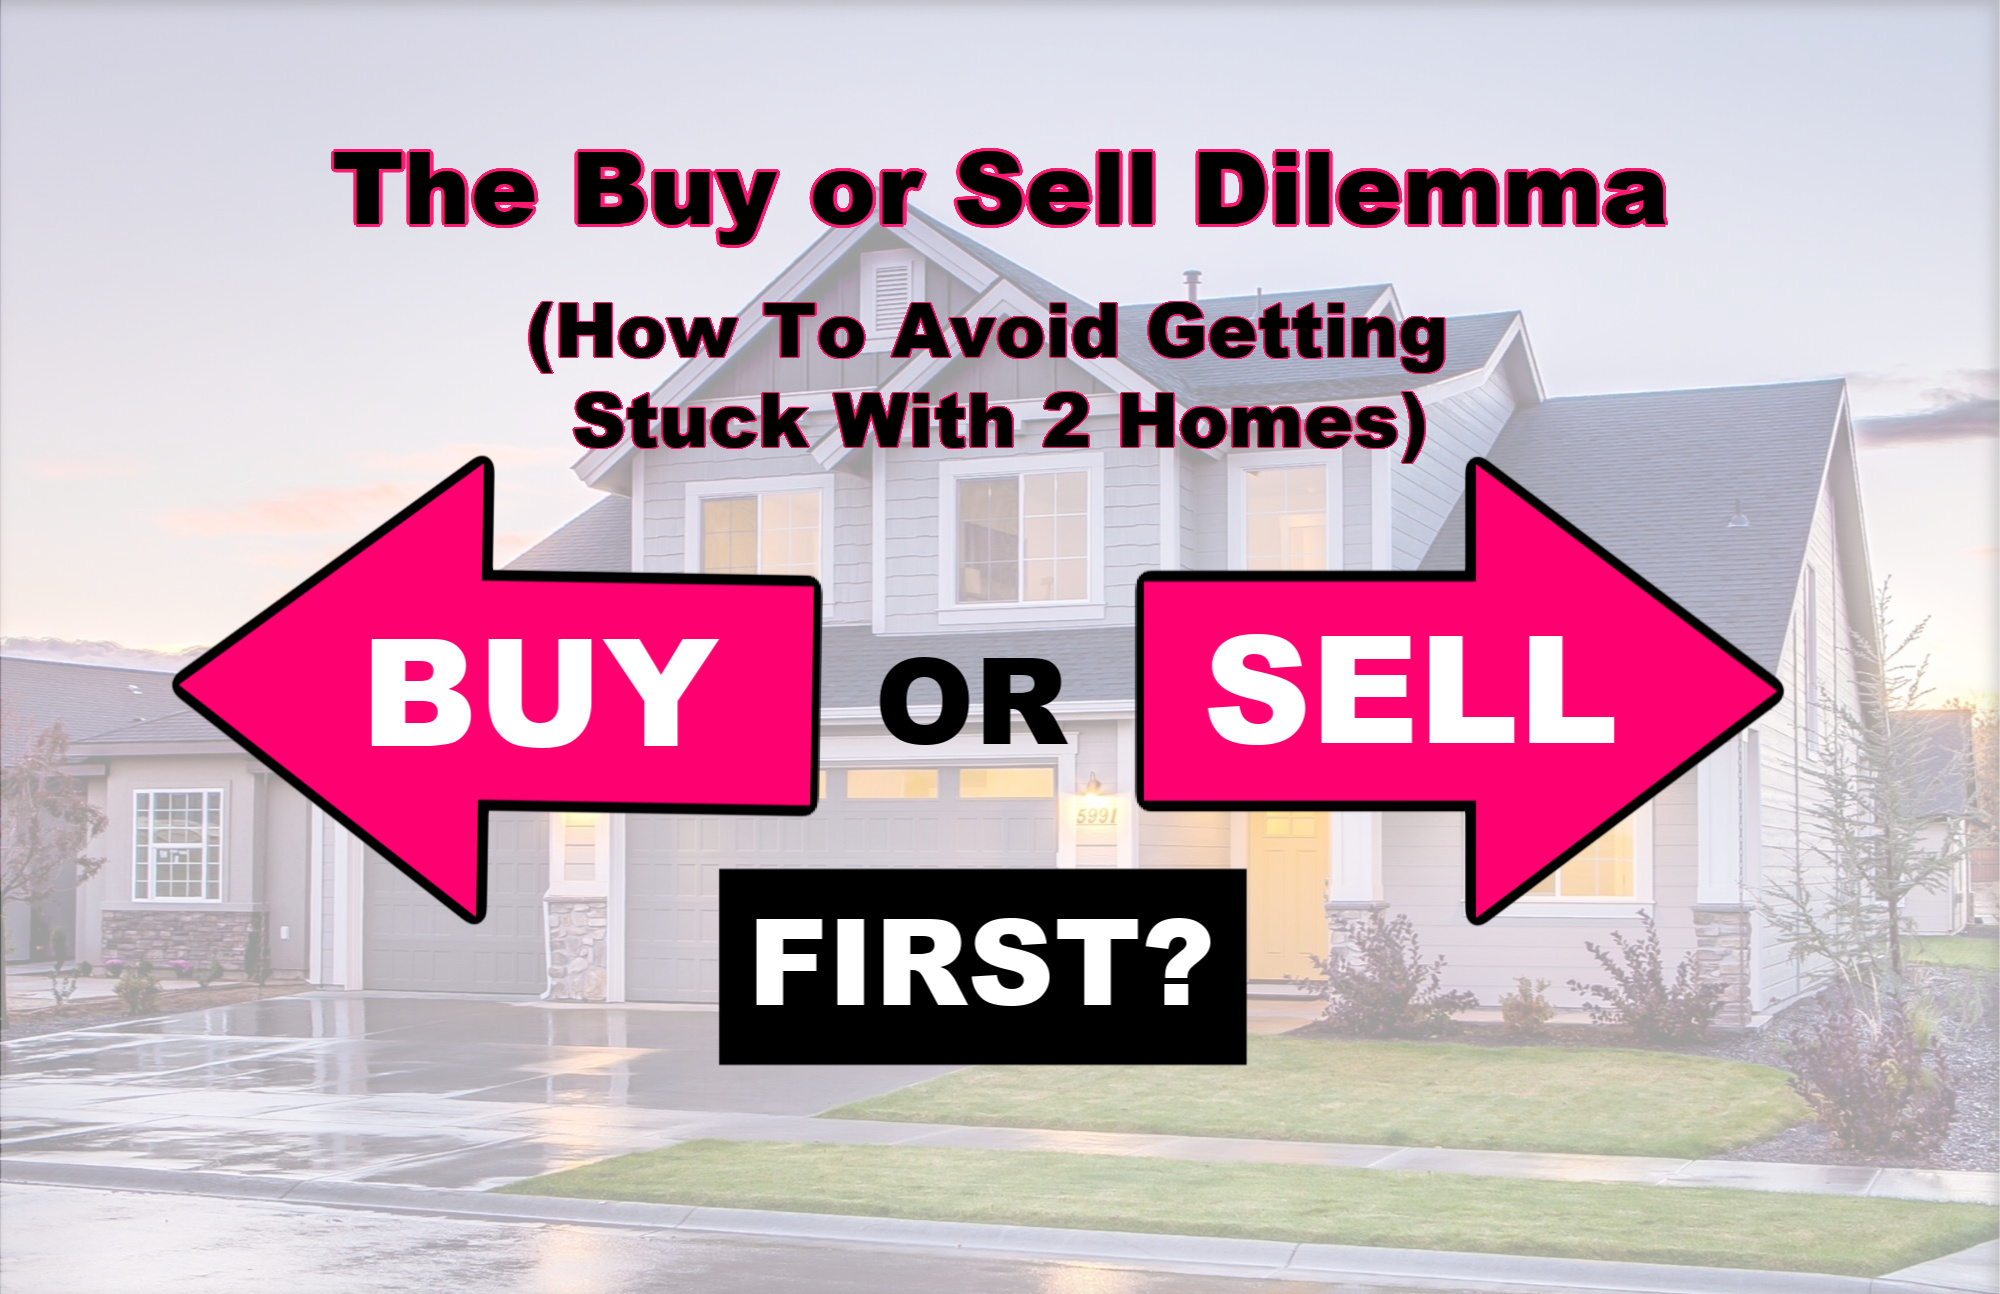 Don't Be Stuck With 2 Homes